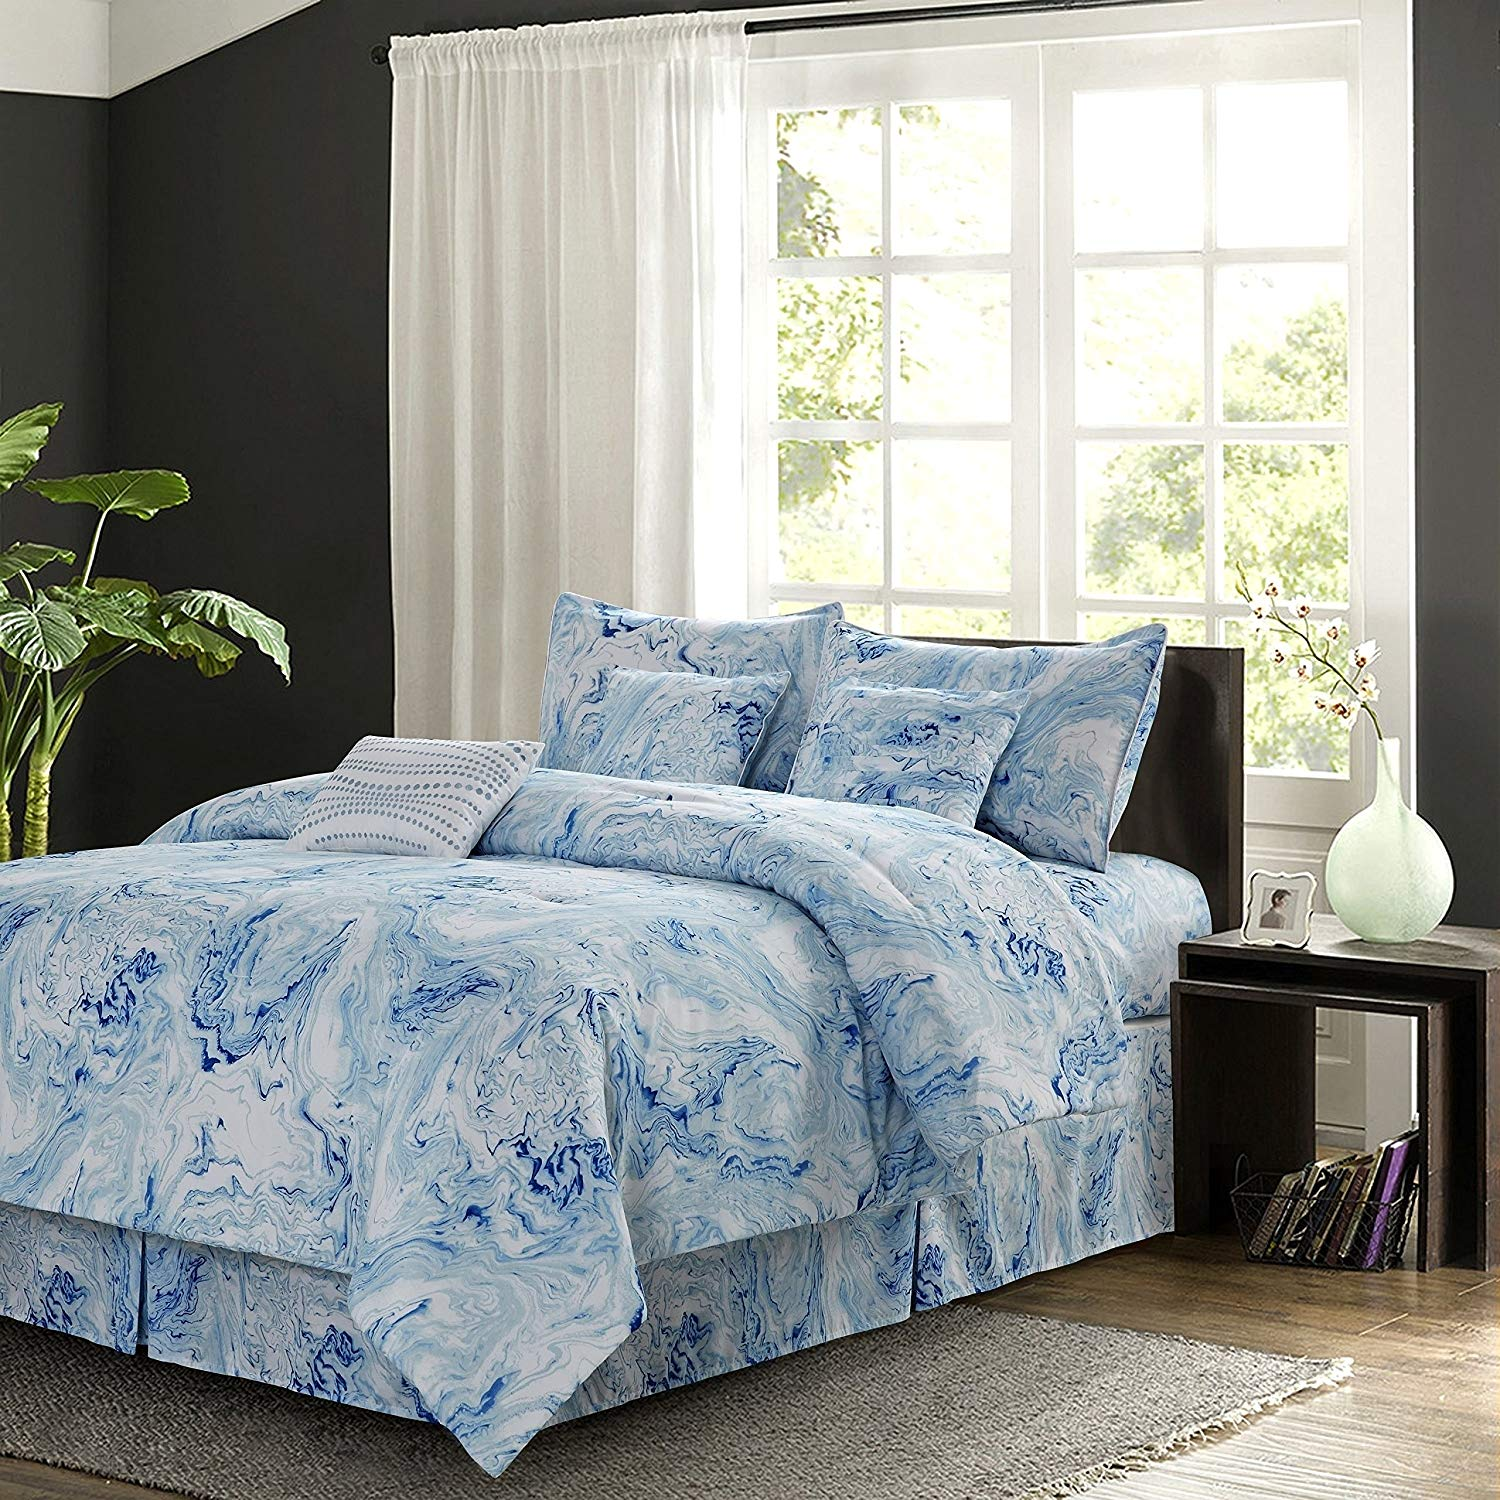 Cheap Tie Dye Comforter Queen Find Tie Dye Comforter Queen Deals On Line At Alibaba Com